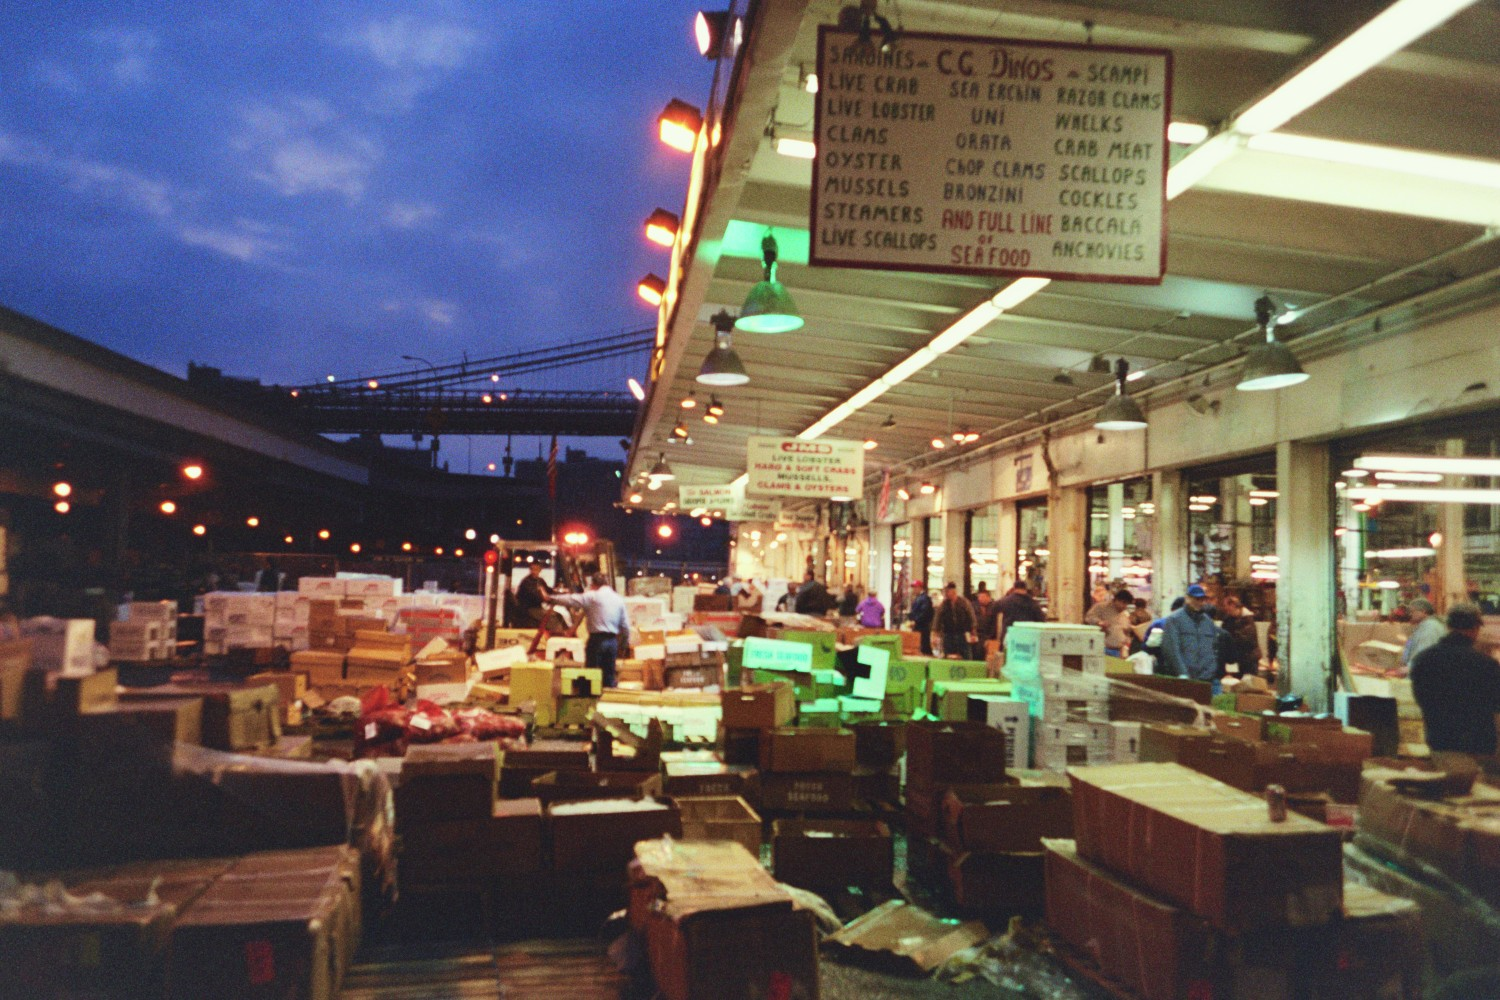 Archideology fulton fish market south street seaport for Fulton fish market